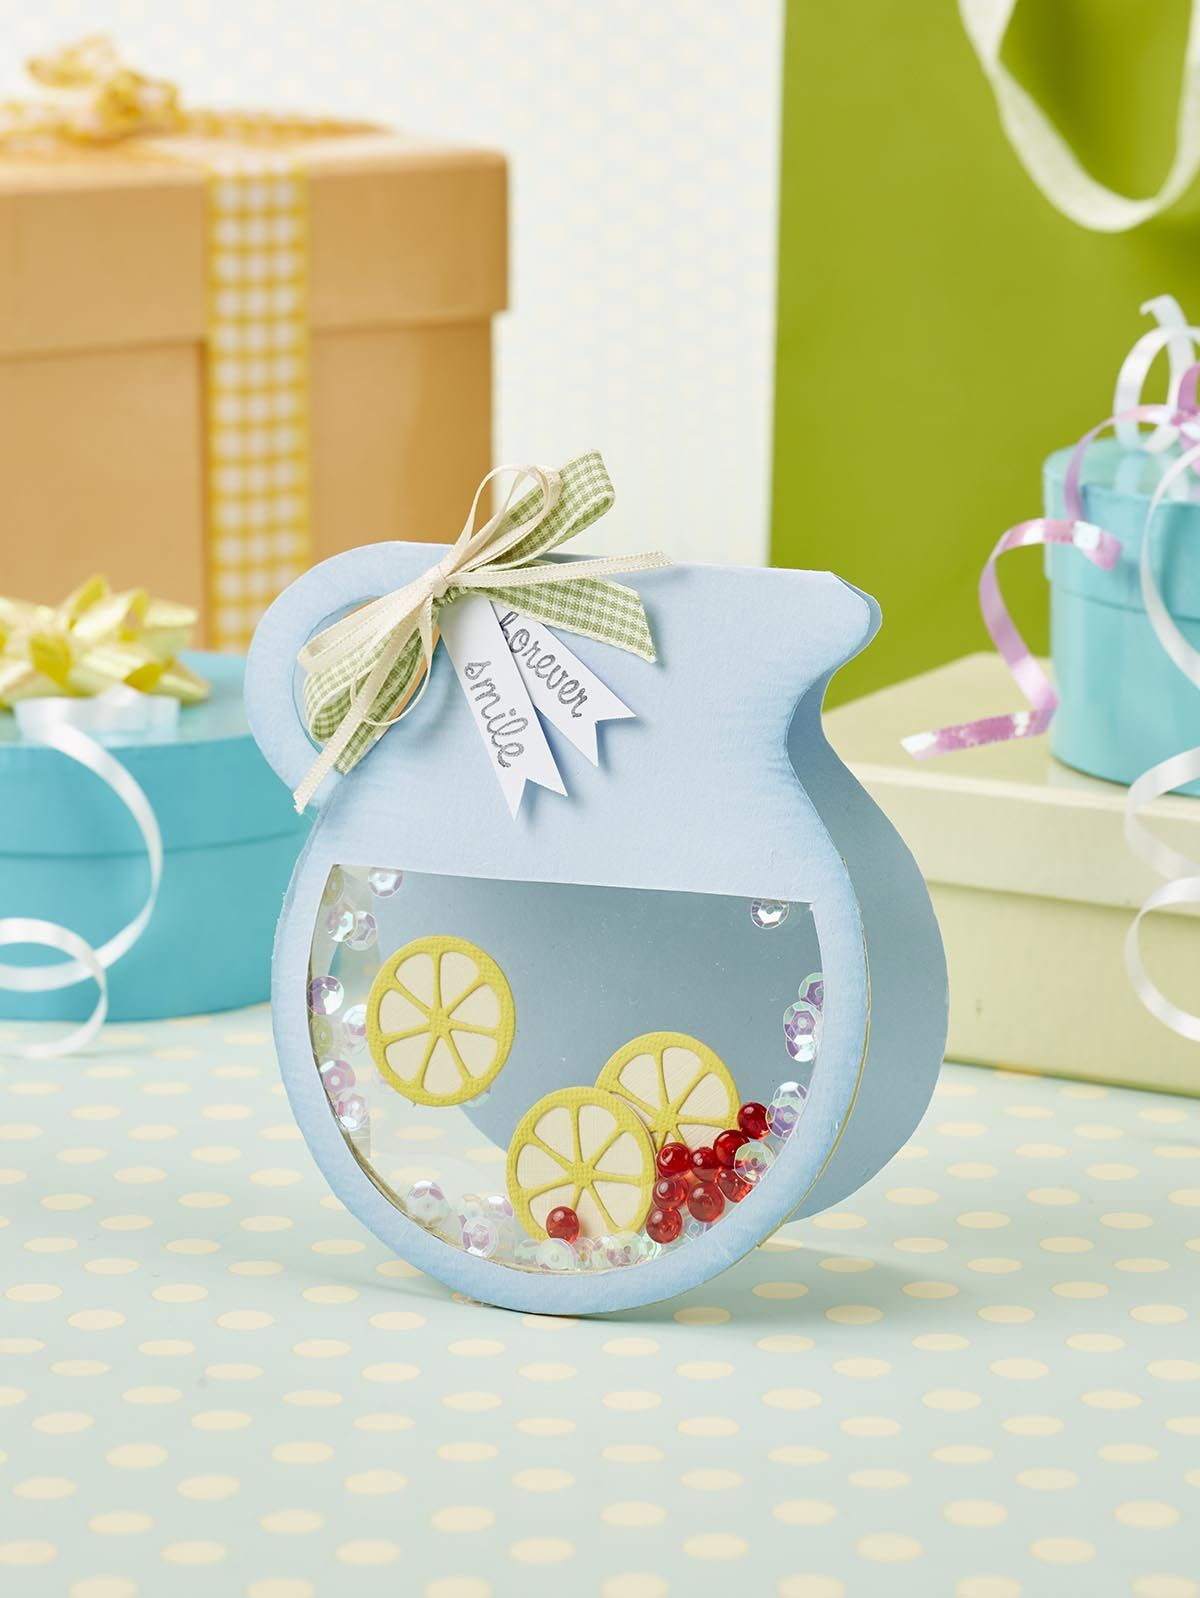 Free Pinwheel And Baby Mobile Templates Paper Crafts Diy Cards Cards